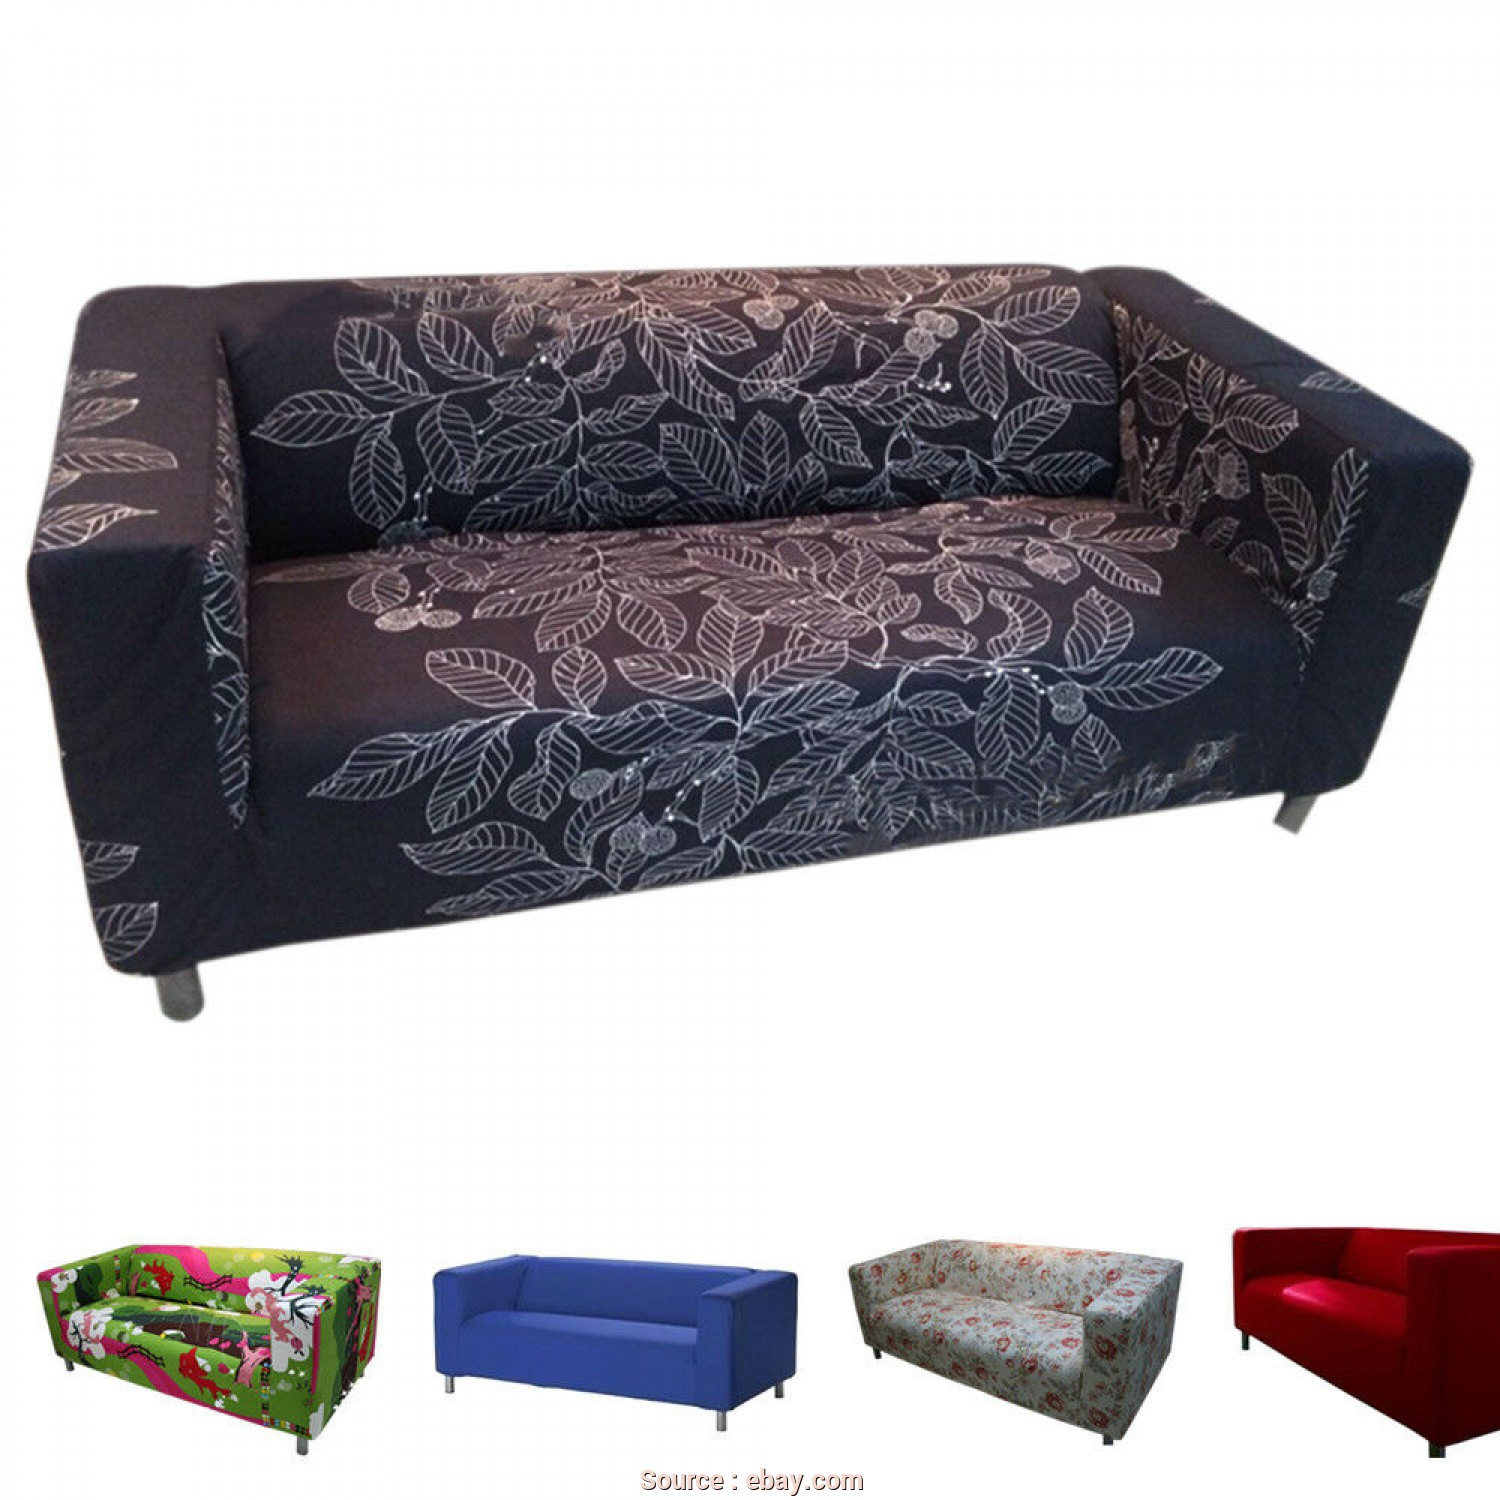 Ikea Klippan Sofa Cover Ebay, Stupefacente Details About Home Furniture Customize Sofa Cover Slipcover, KLIPPAN 4 Seat Decoration UDD